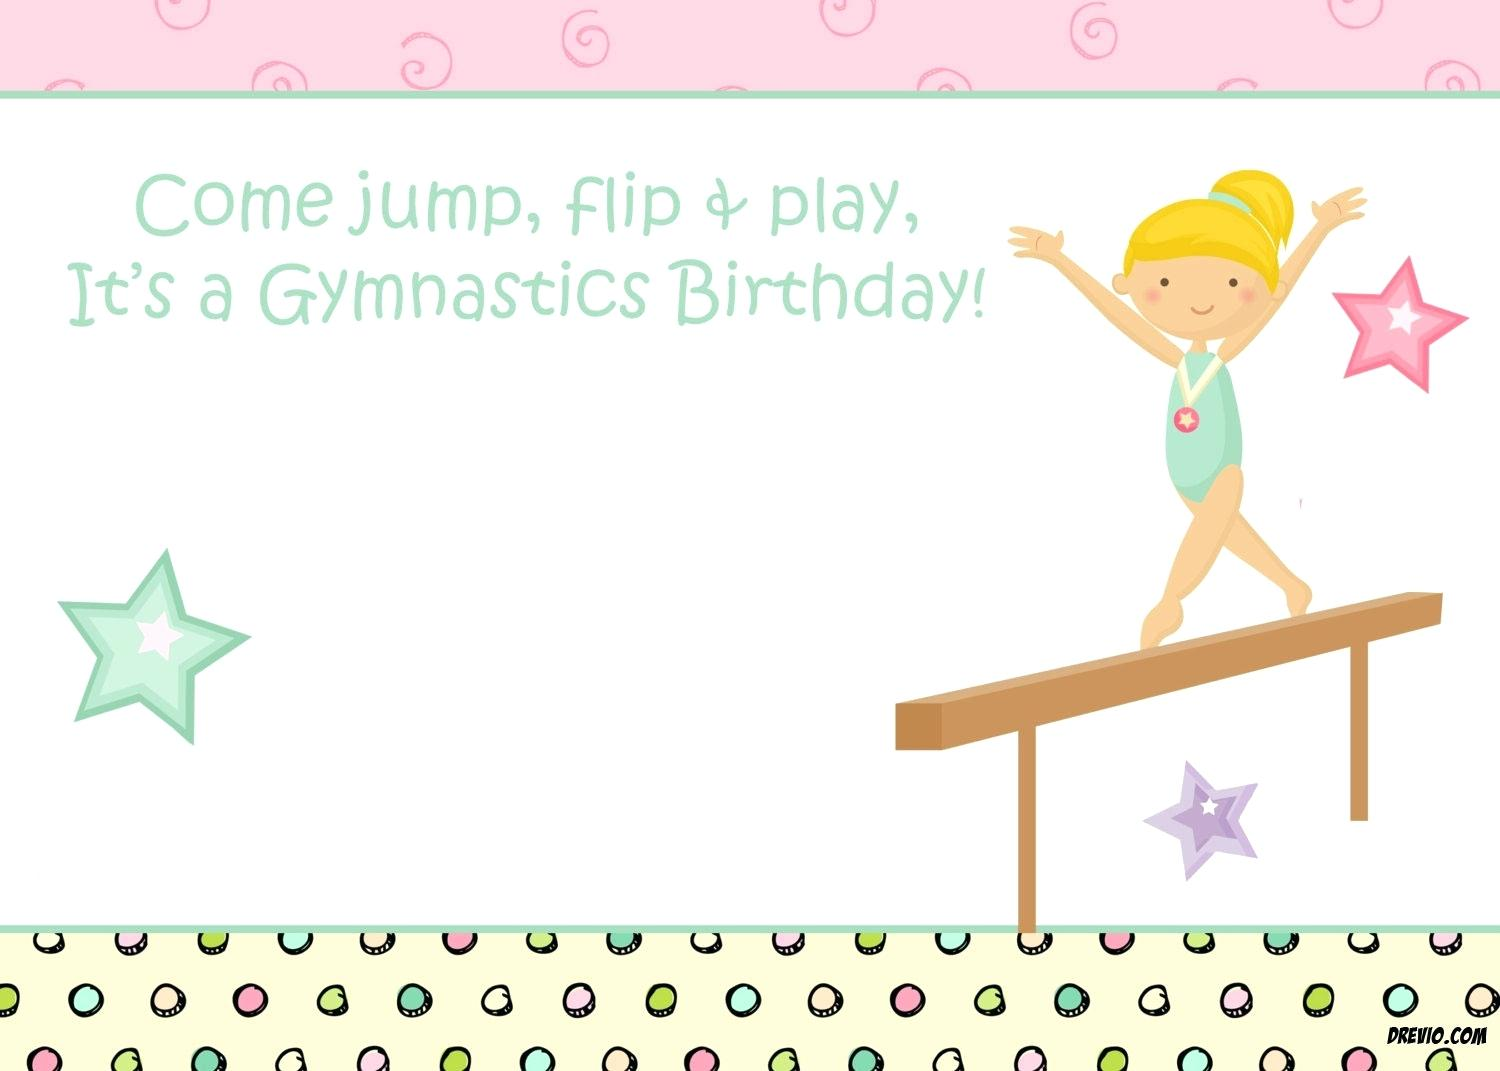 birthday tag template ; birthday-tag-template-the-party-also-will-be-more-fun-with-some-games-at-gym-kids-who-can-get-highest-score-free-coupon-to-play-on-gymnastic-area-favor